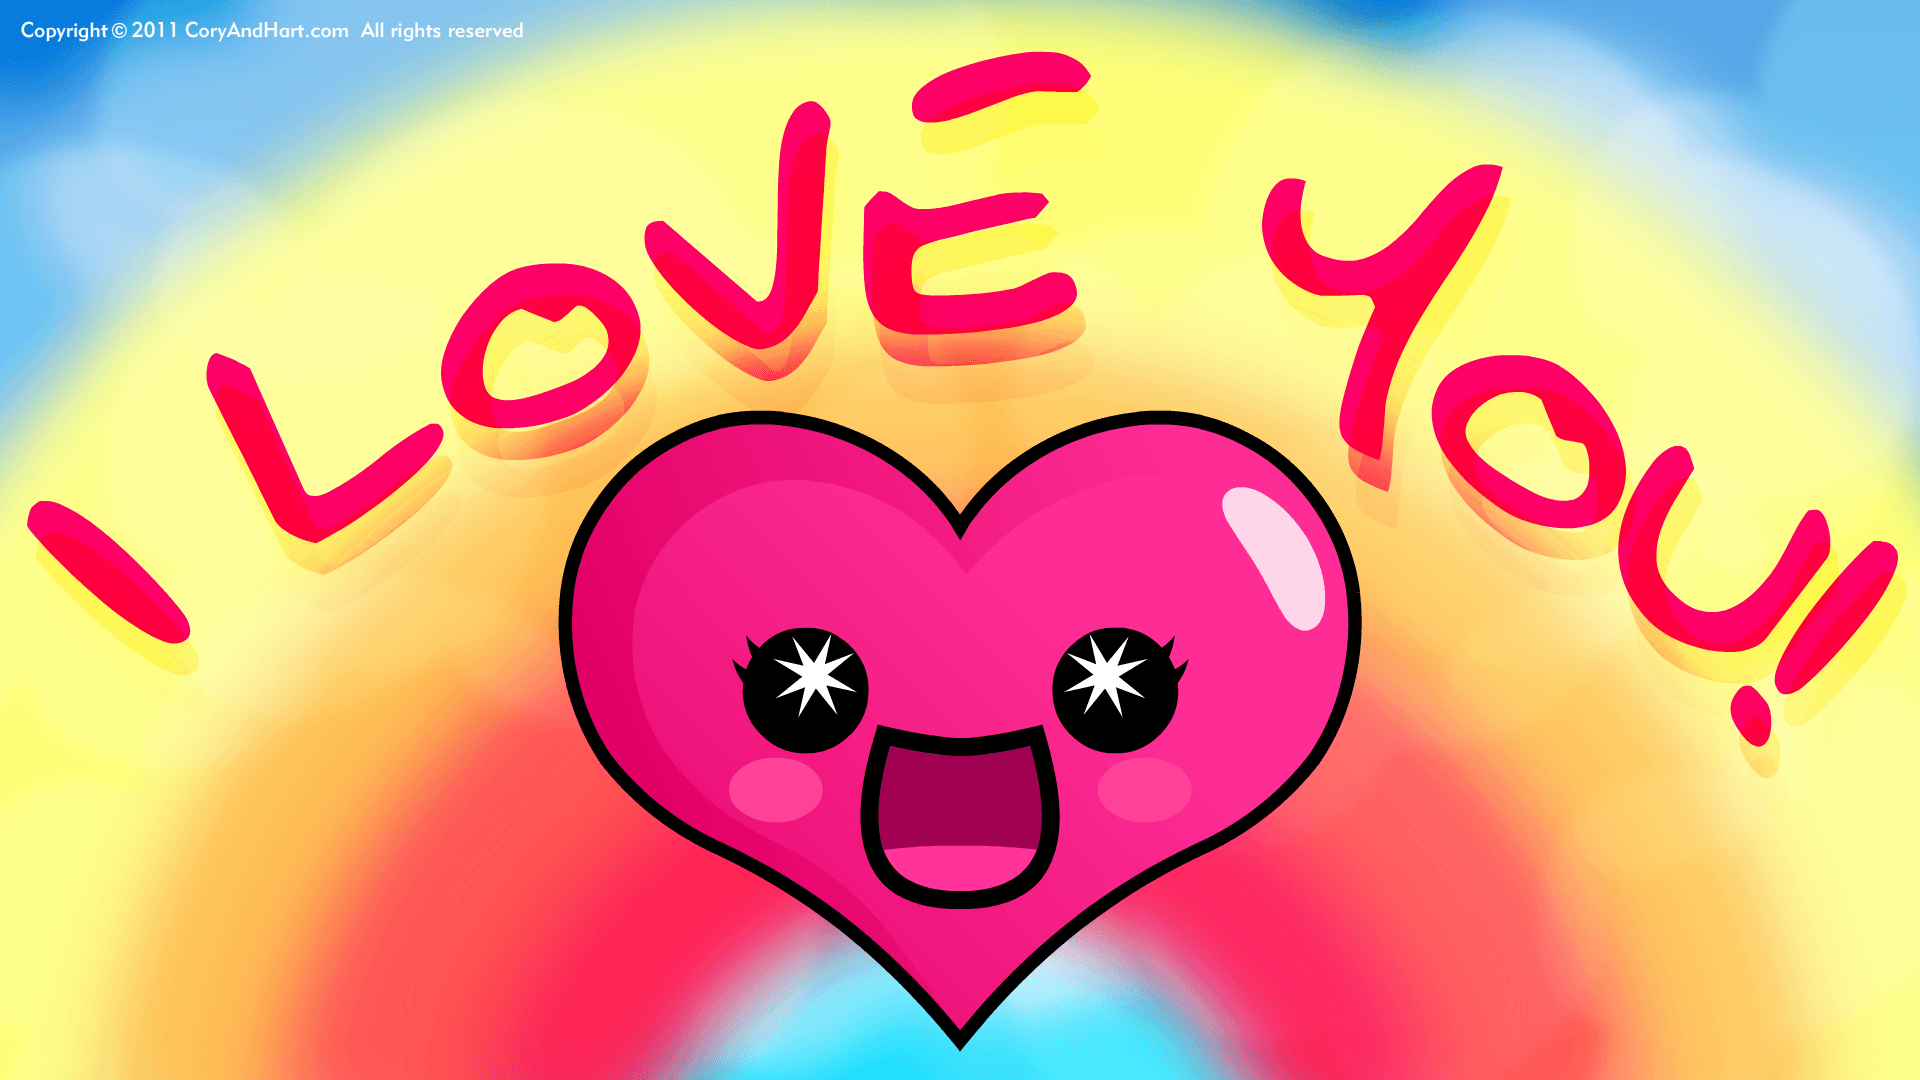 cute i love you wallpapers wallpaper cave